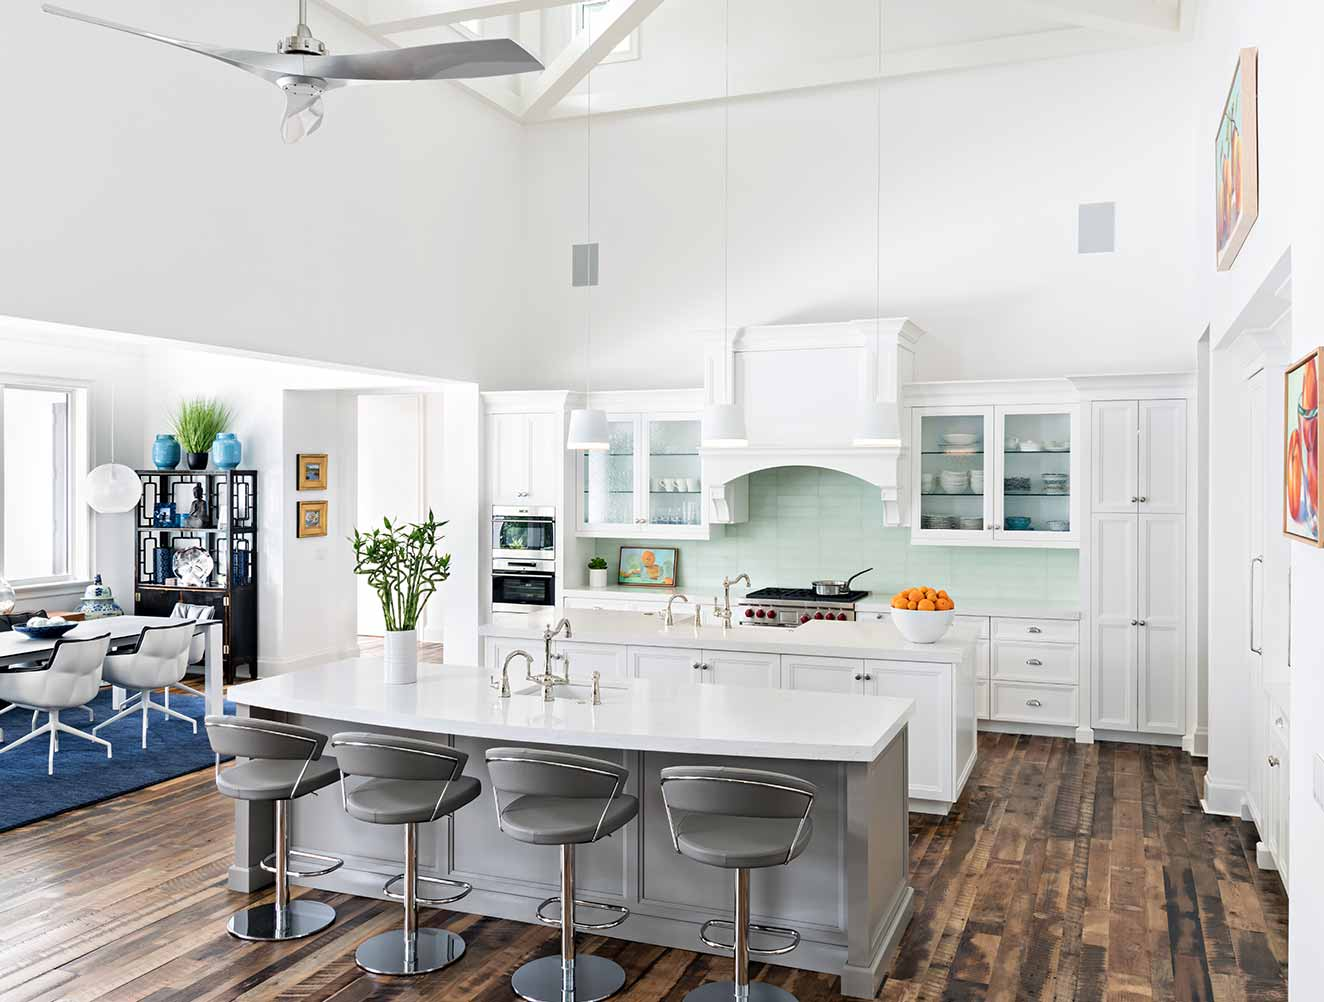 Kitchen at Yucca Residence in Naples Florida, single family home designed by Kukk Architecture & Design Naples Architecture Firm